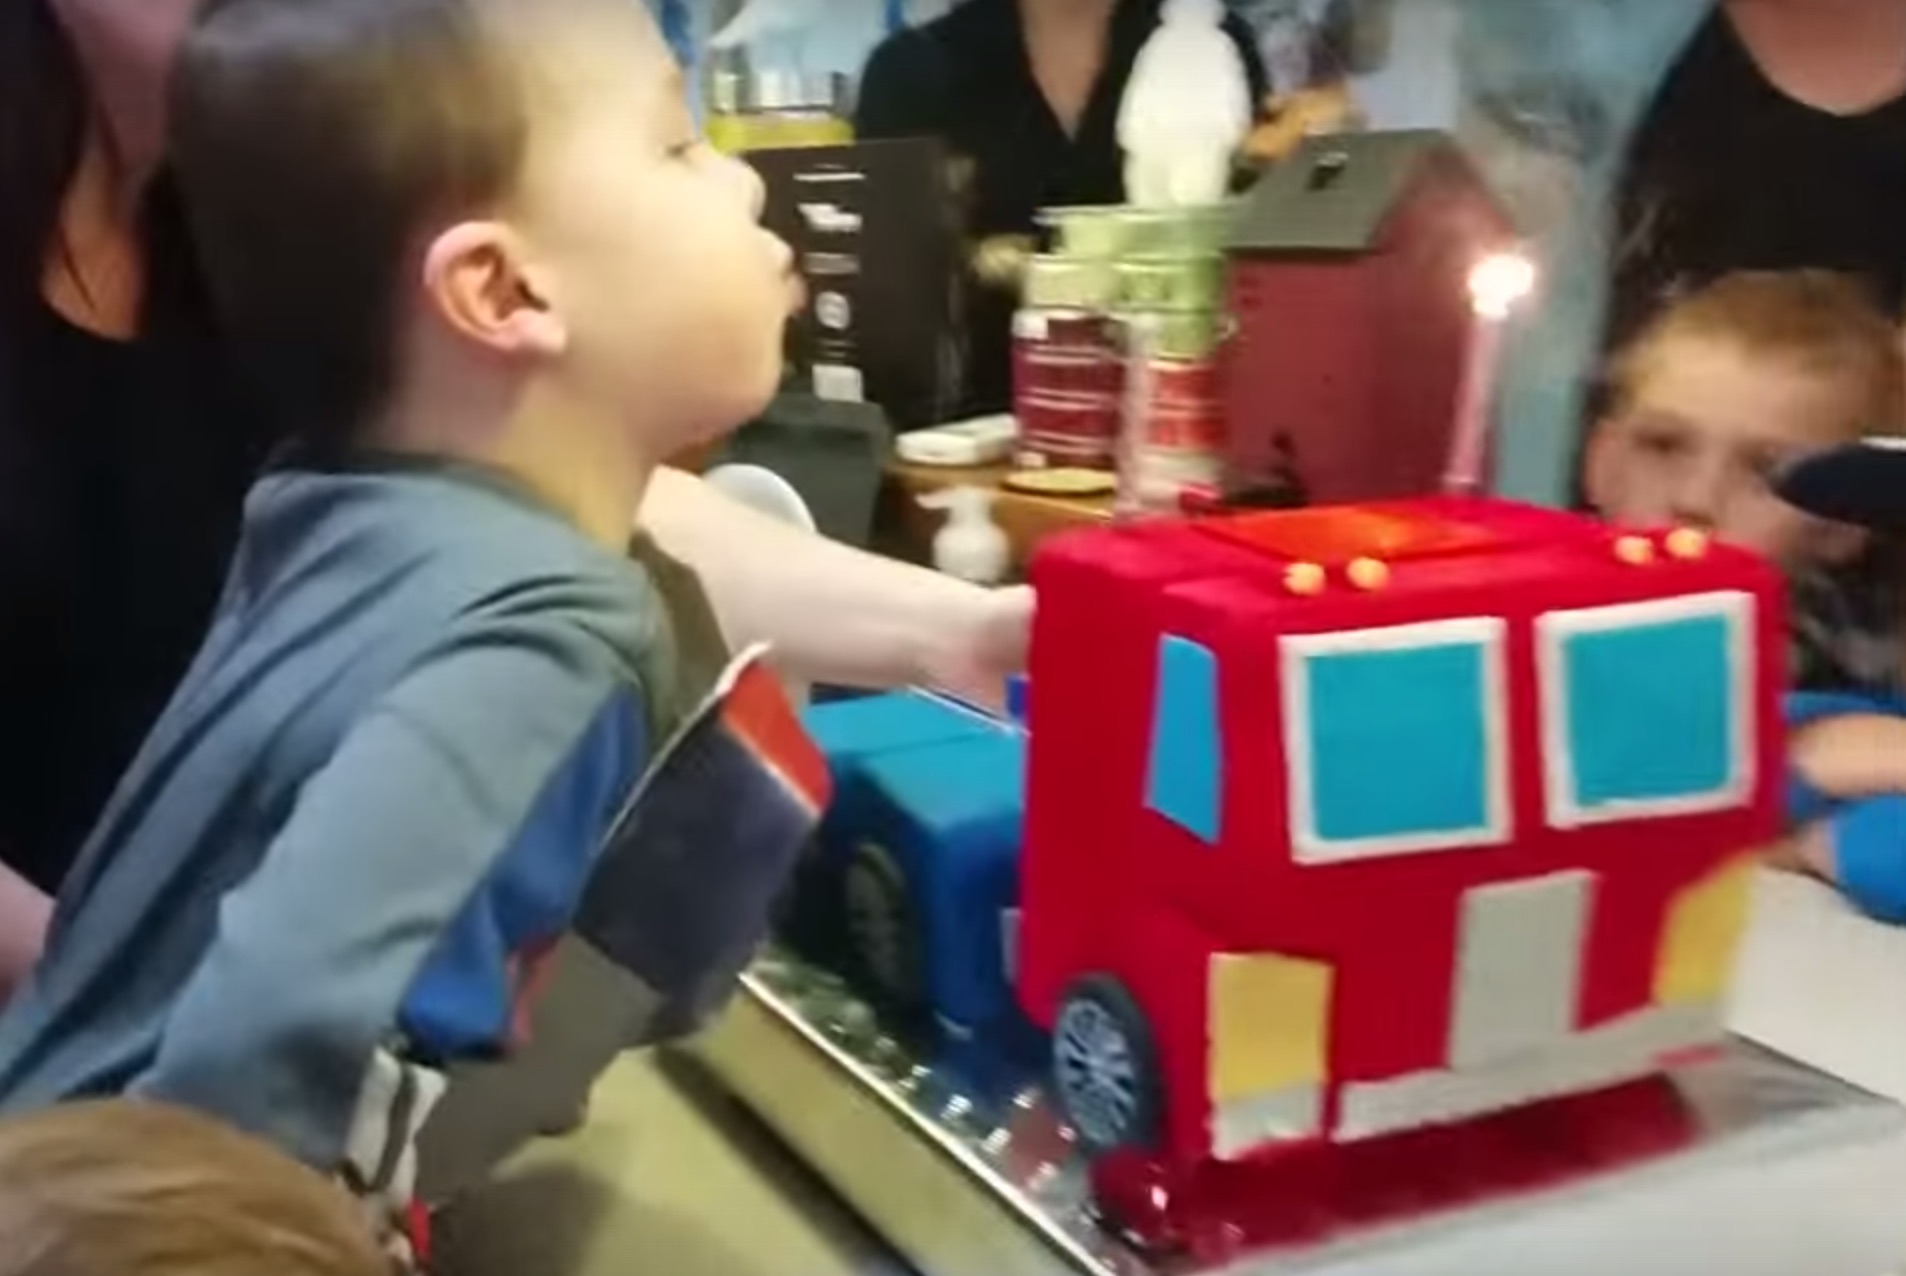 Awesome parents make awesome son the most awesome cake ever